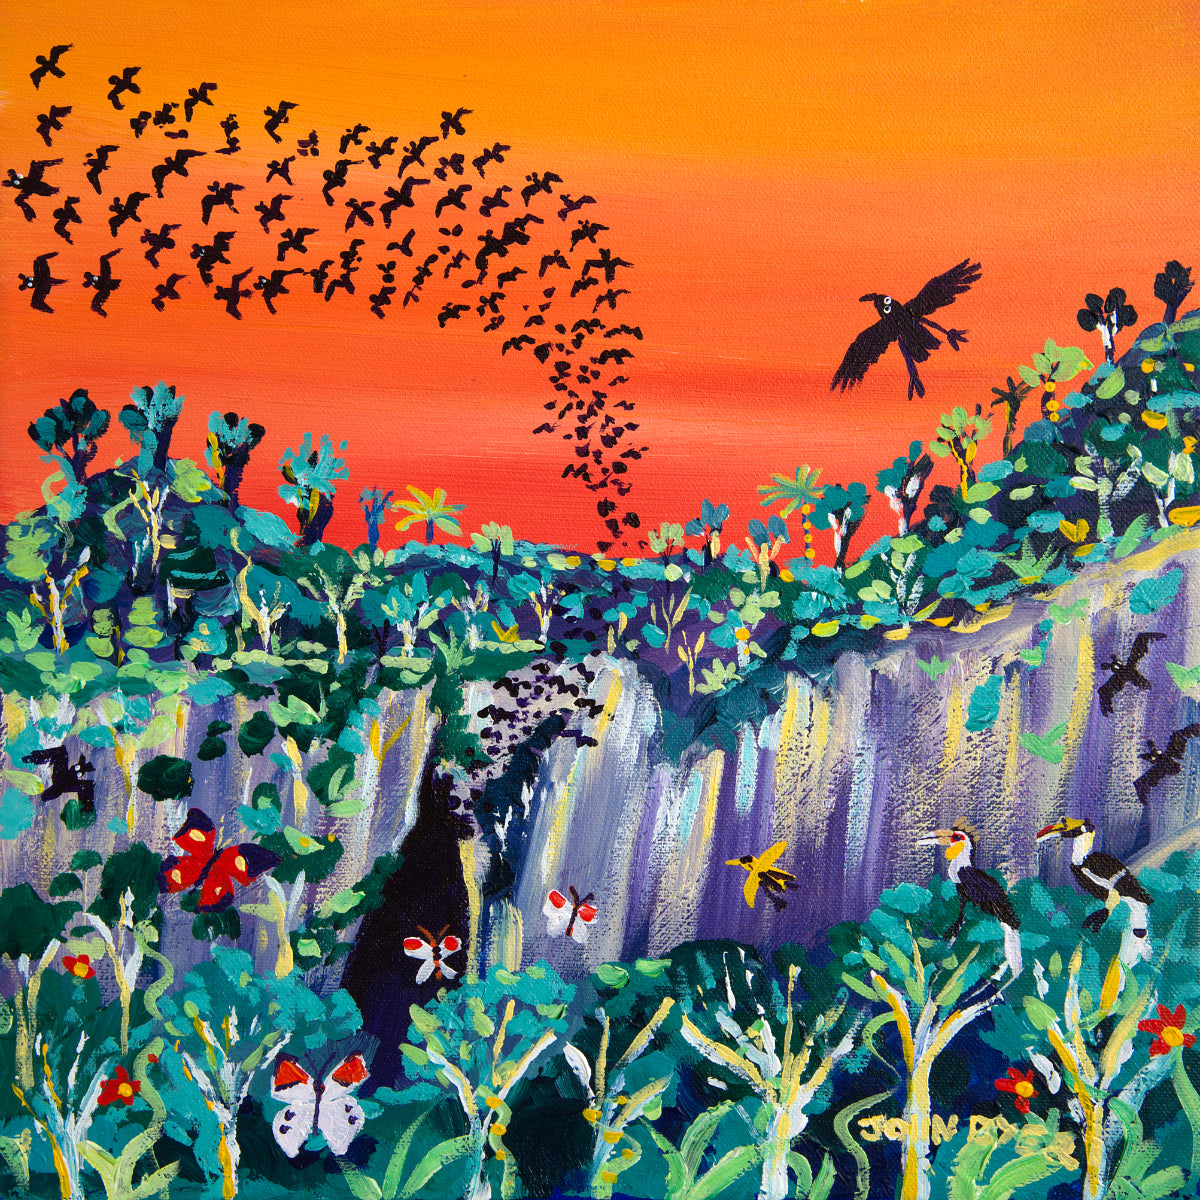 Limited Print by artist John Dyer. Sunset Bats, Mulu, Borneo